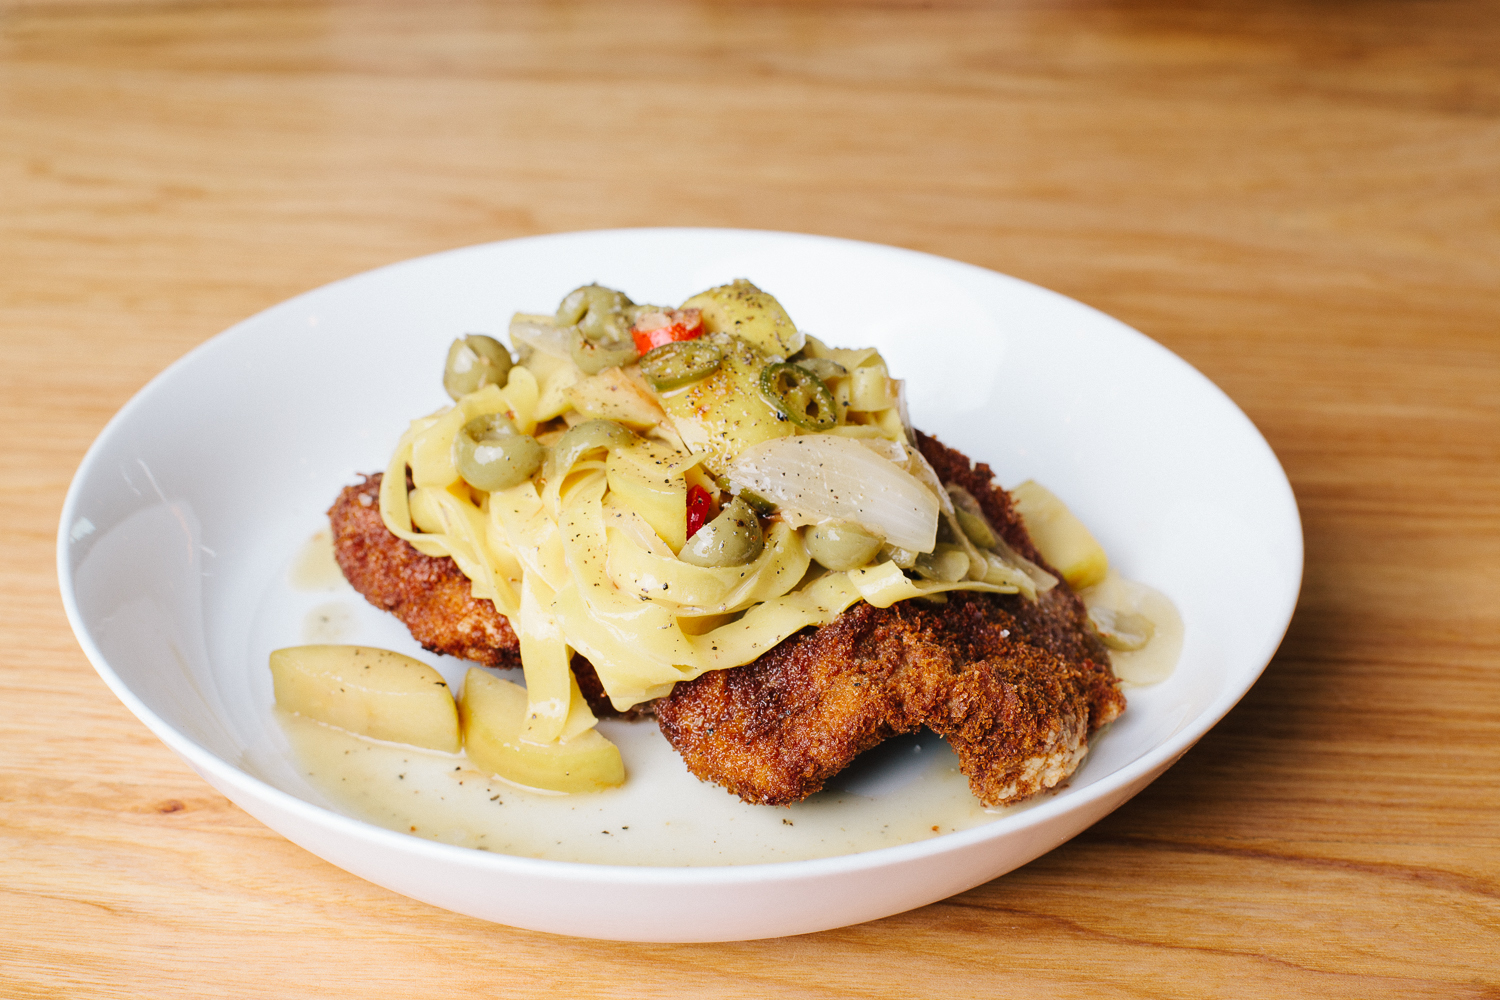 Breaded Pork Chops and Pasta